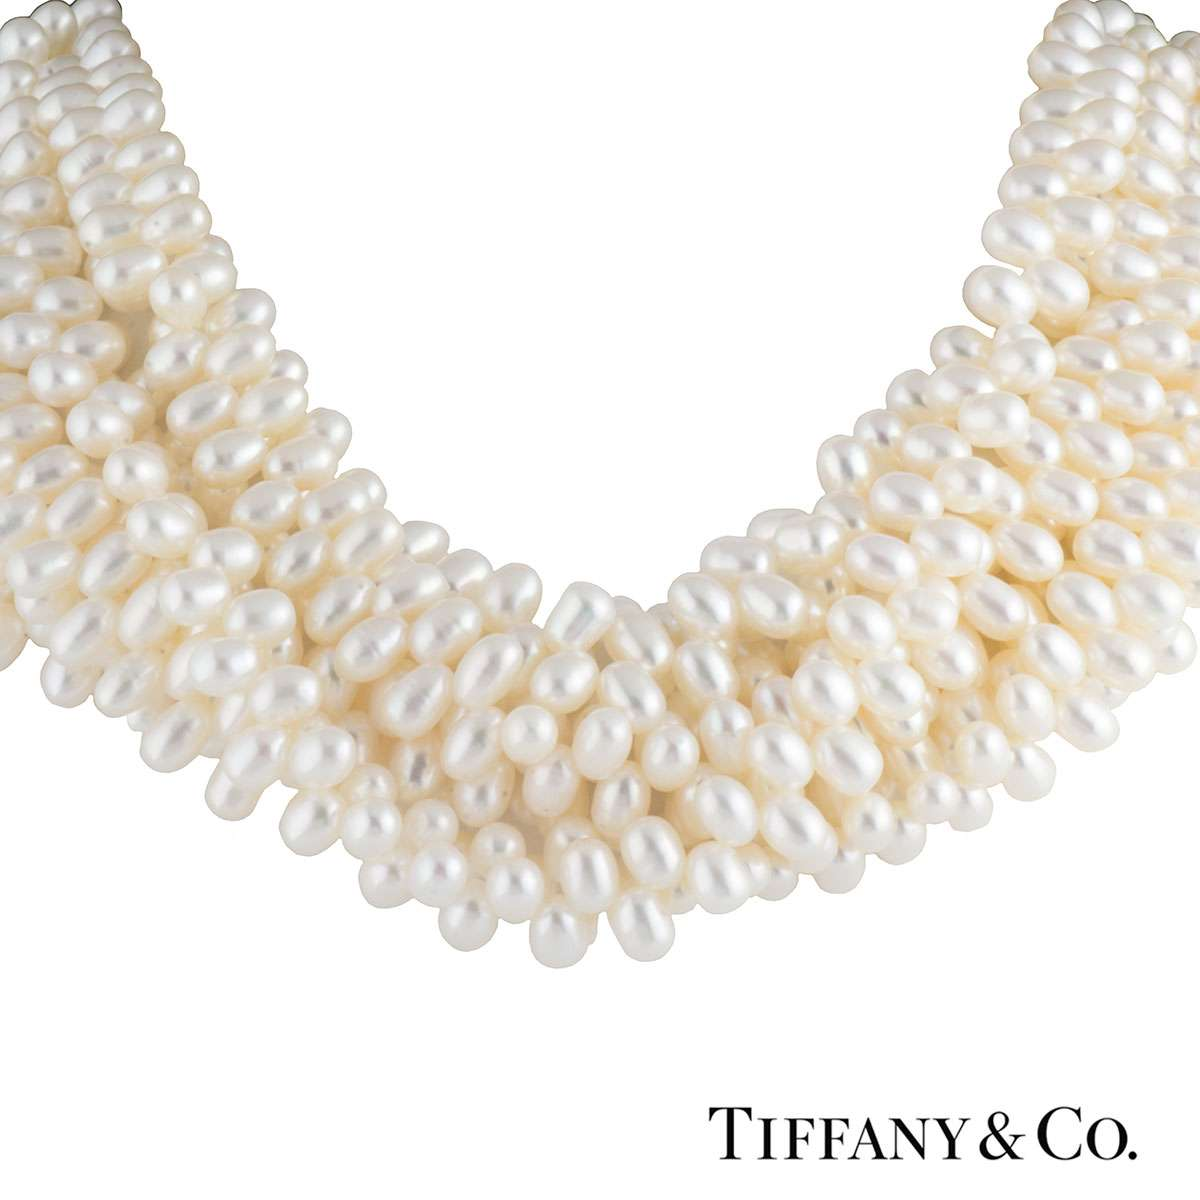 Tiffany & Co. Paloma Picasso Pearl Torsade Necklace